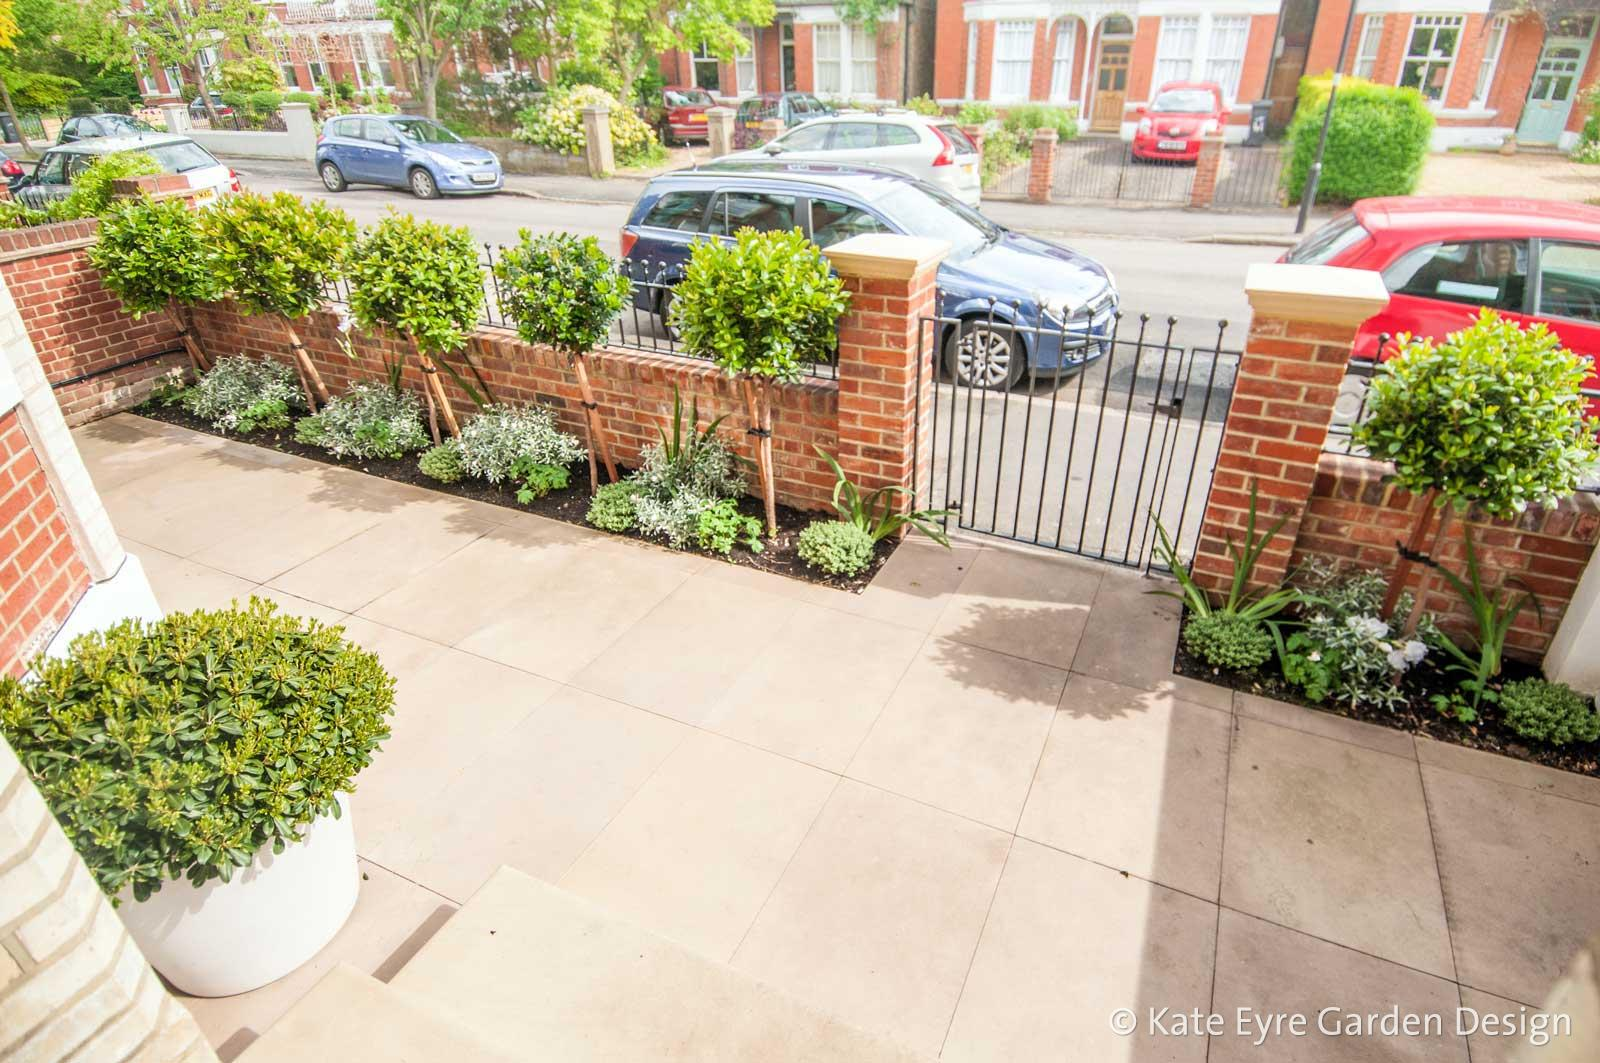 front garden design in idmiston road london 2